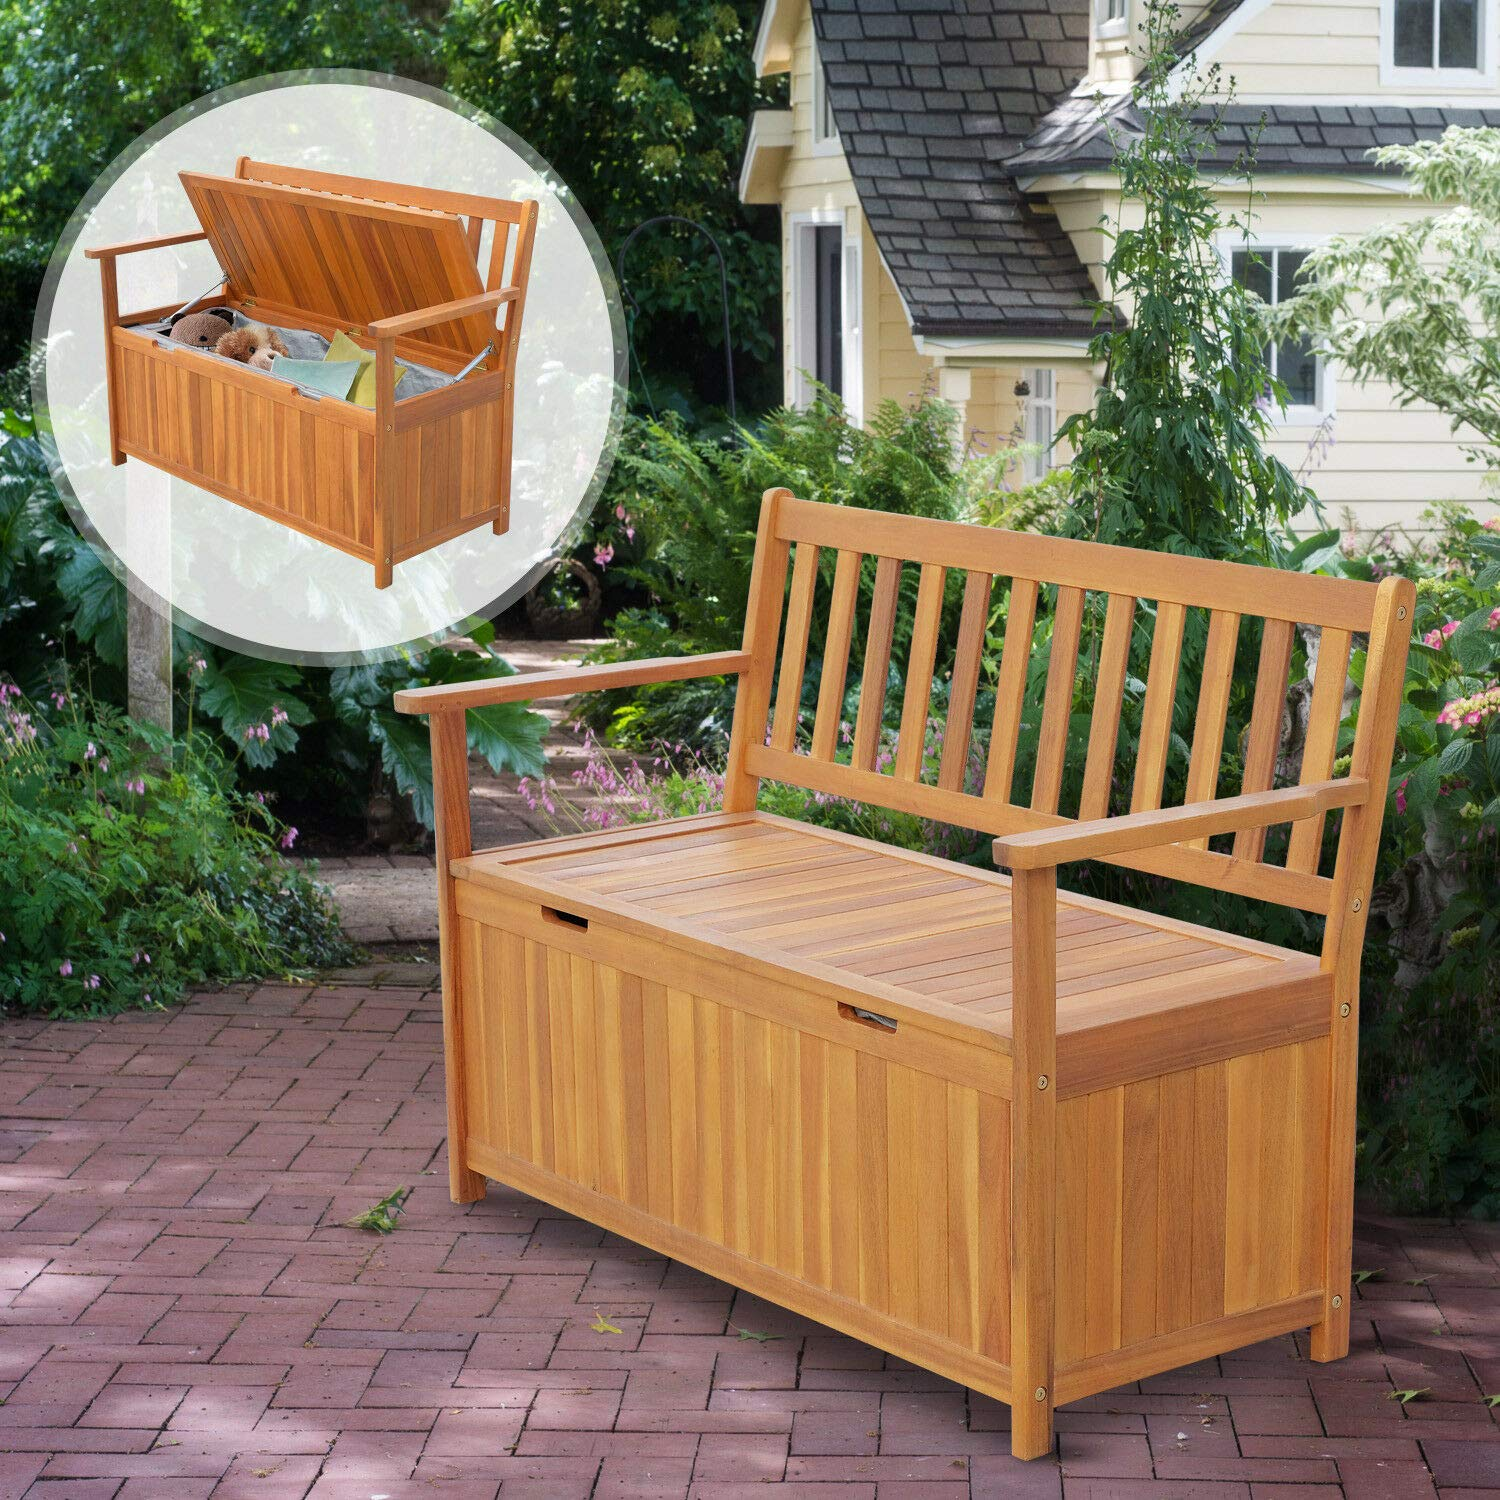 Multi-Purpose Tool Studio Storehouse Seating 47'' Natural Wooden Outdside Chest Storage Bench Country Vintage Style 47.25'' Lx23.5 Wx34.25 H Patio 2-Person Chair Dou Seat Deck Box